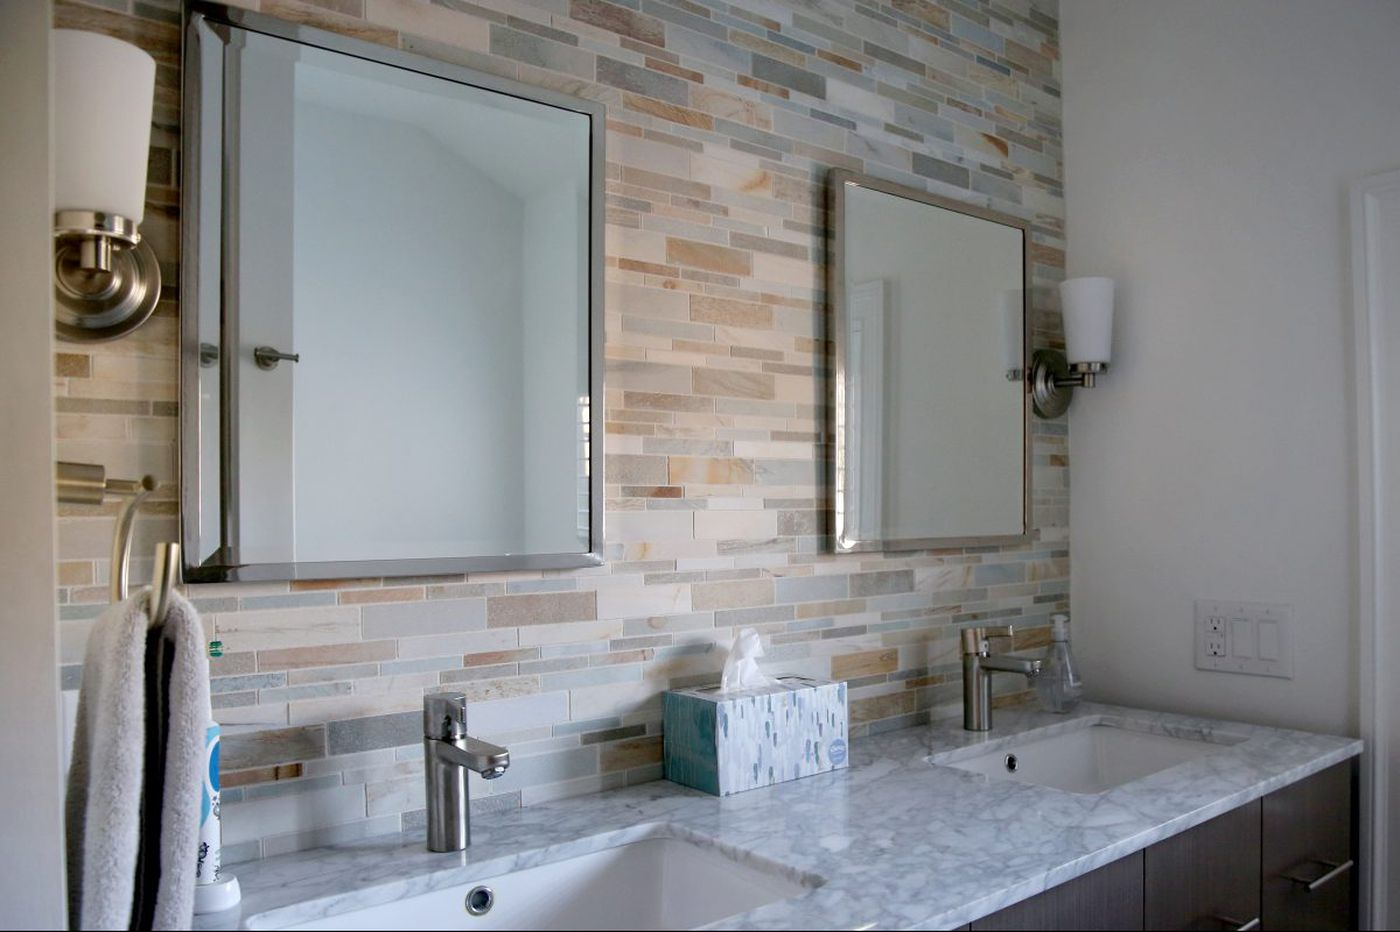 How kitchen backsplashes and bathroom tile can make an artistic statement